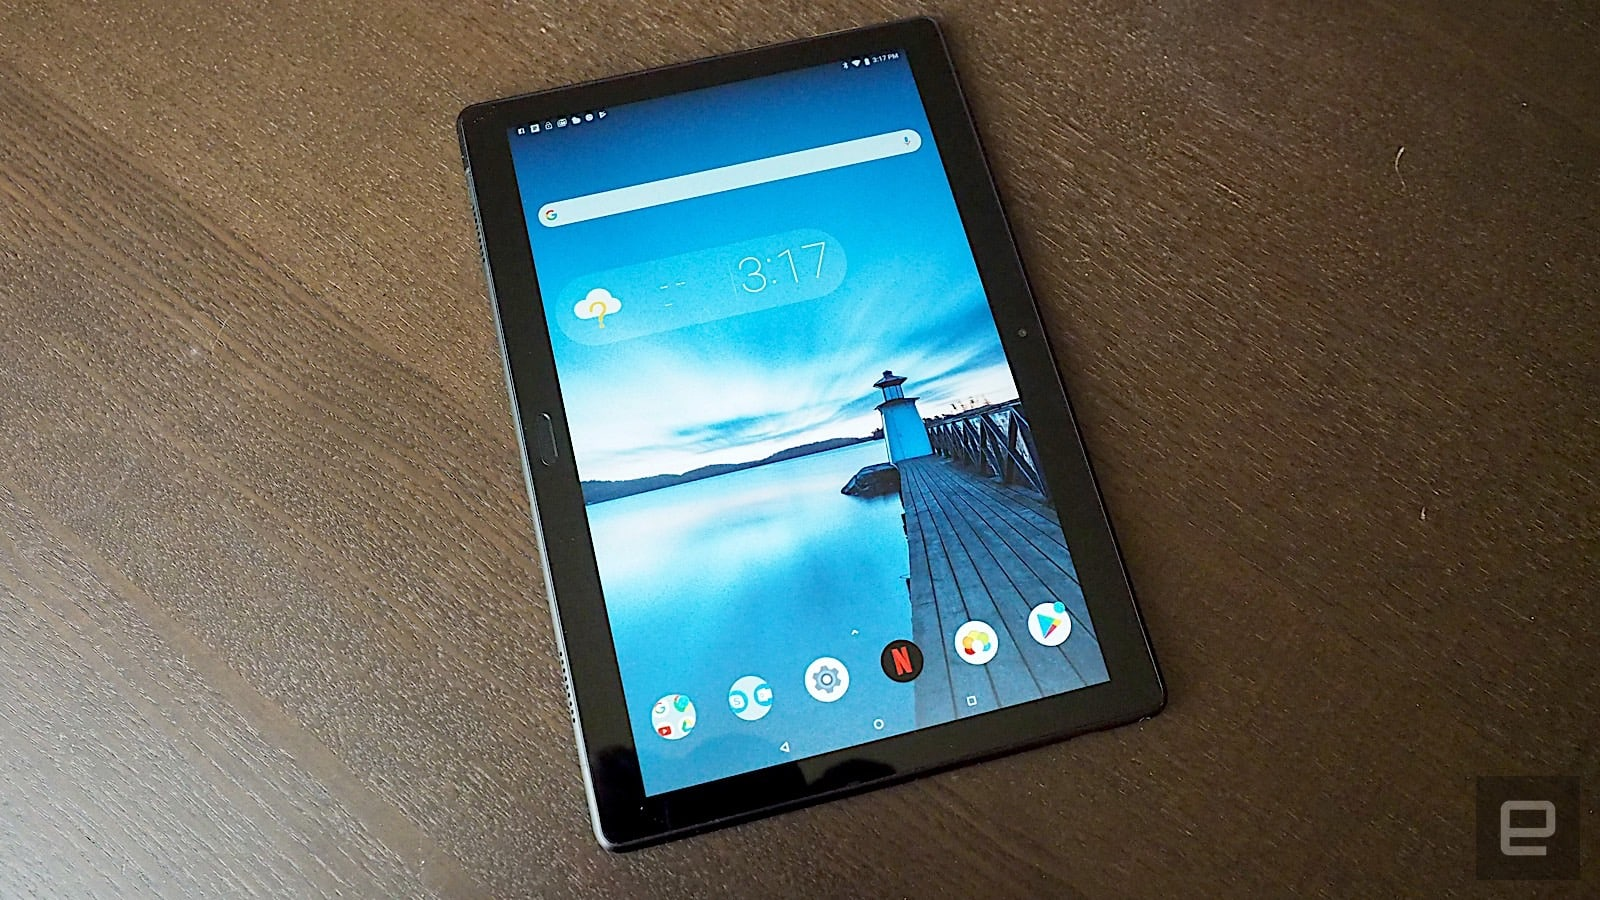 Lenovo Smart Tab review: A hybrid smart display that lives